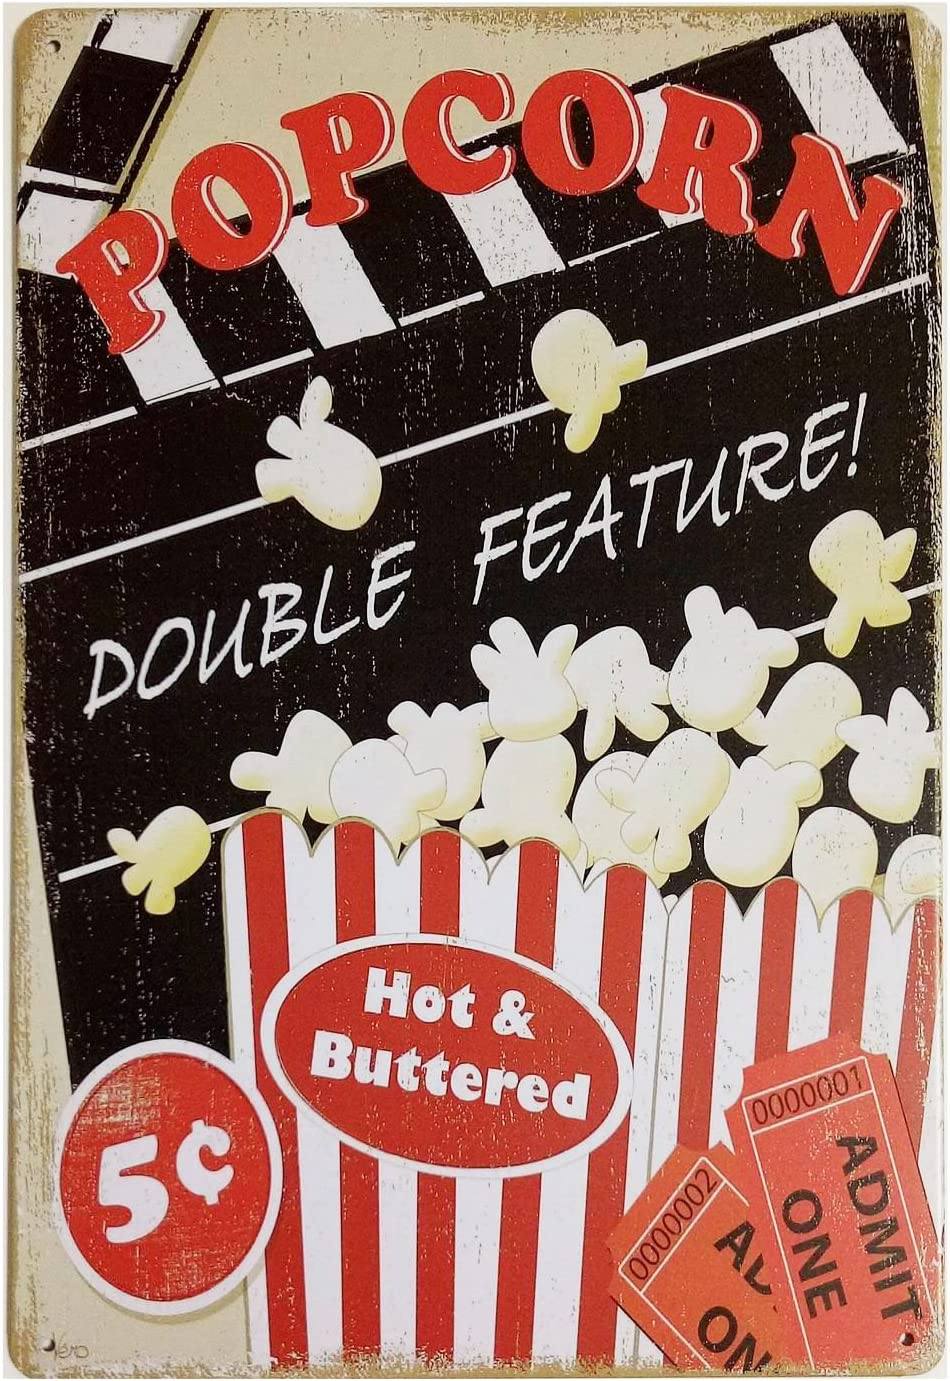 ERLOOD Popcorn Double Feature Hot&Buttered Retro Vintage Decor Metal Tin Sign 12 X8 Inches